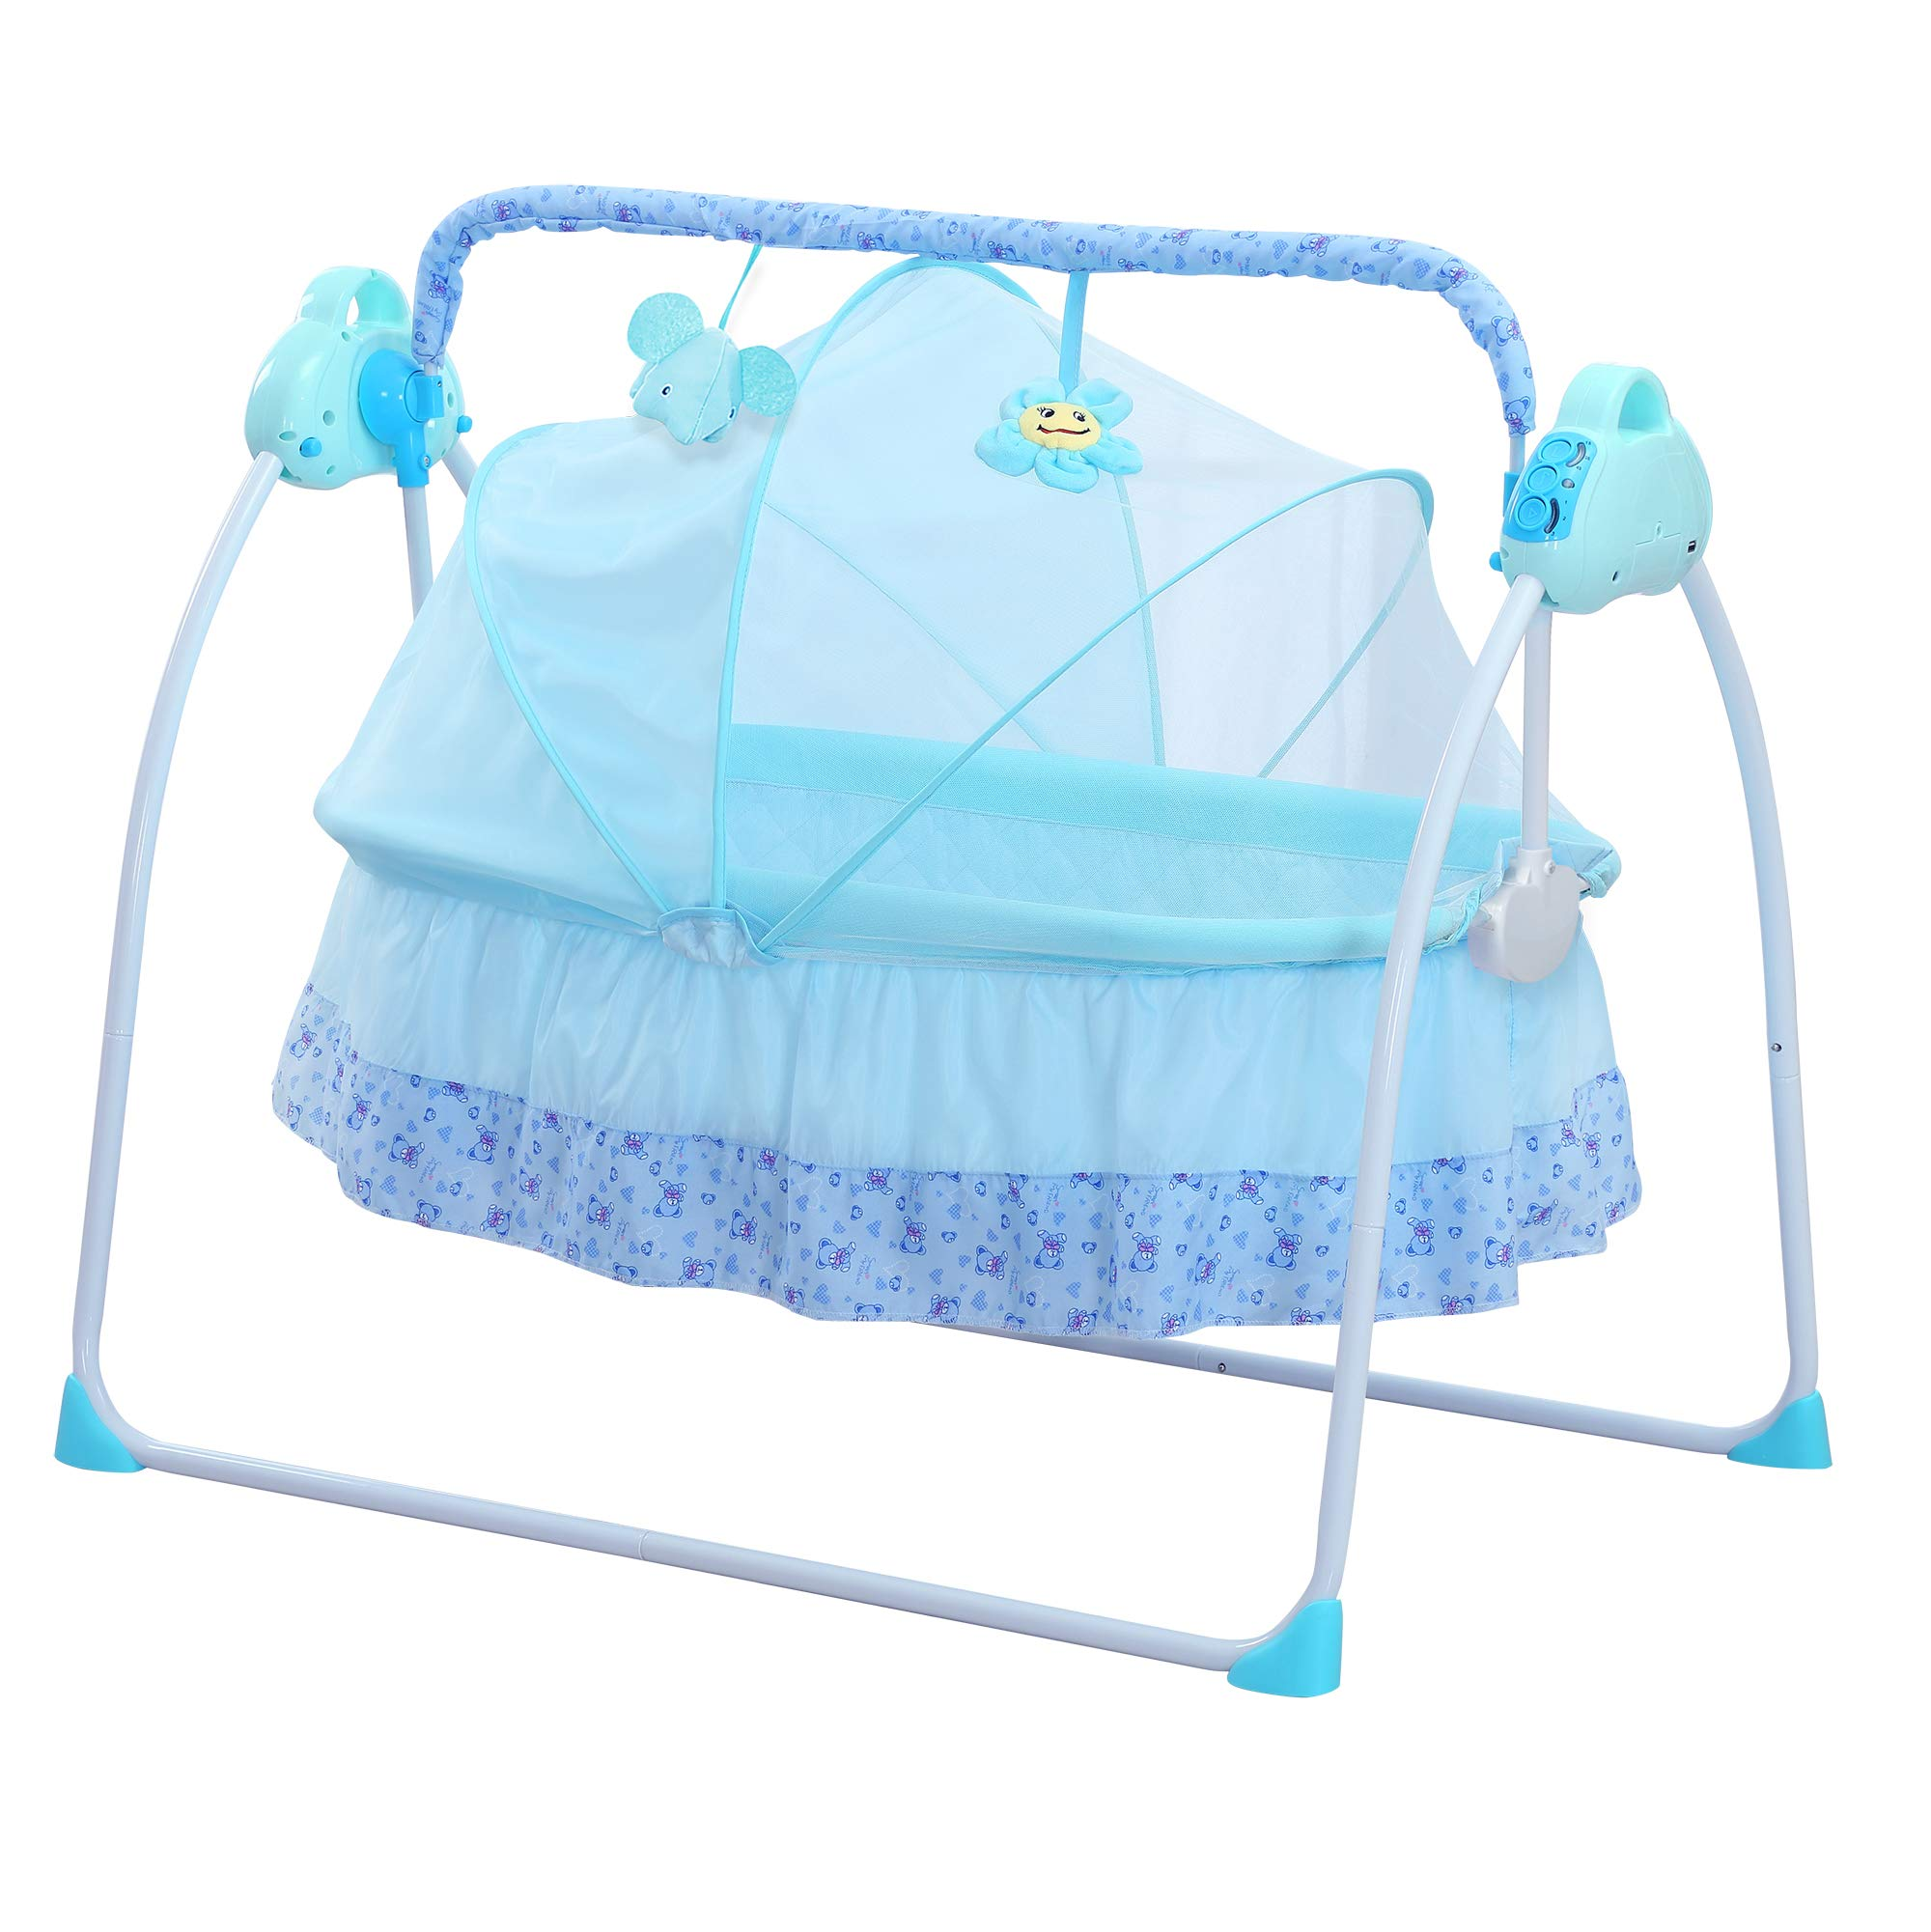 CBBAY Electric Cradle for Baby,Automatic Baby Basket Electric Rocking Multi-Function Baby Swing Cradle Bed by CBBAY